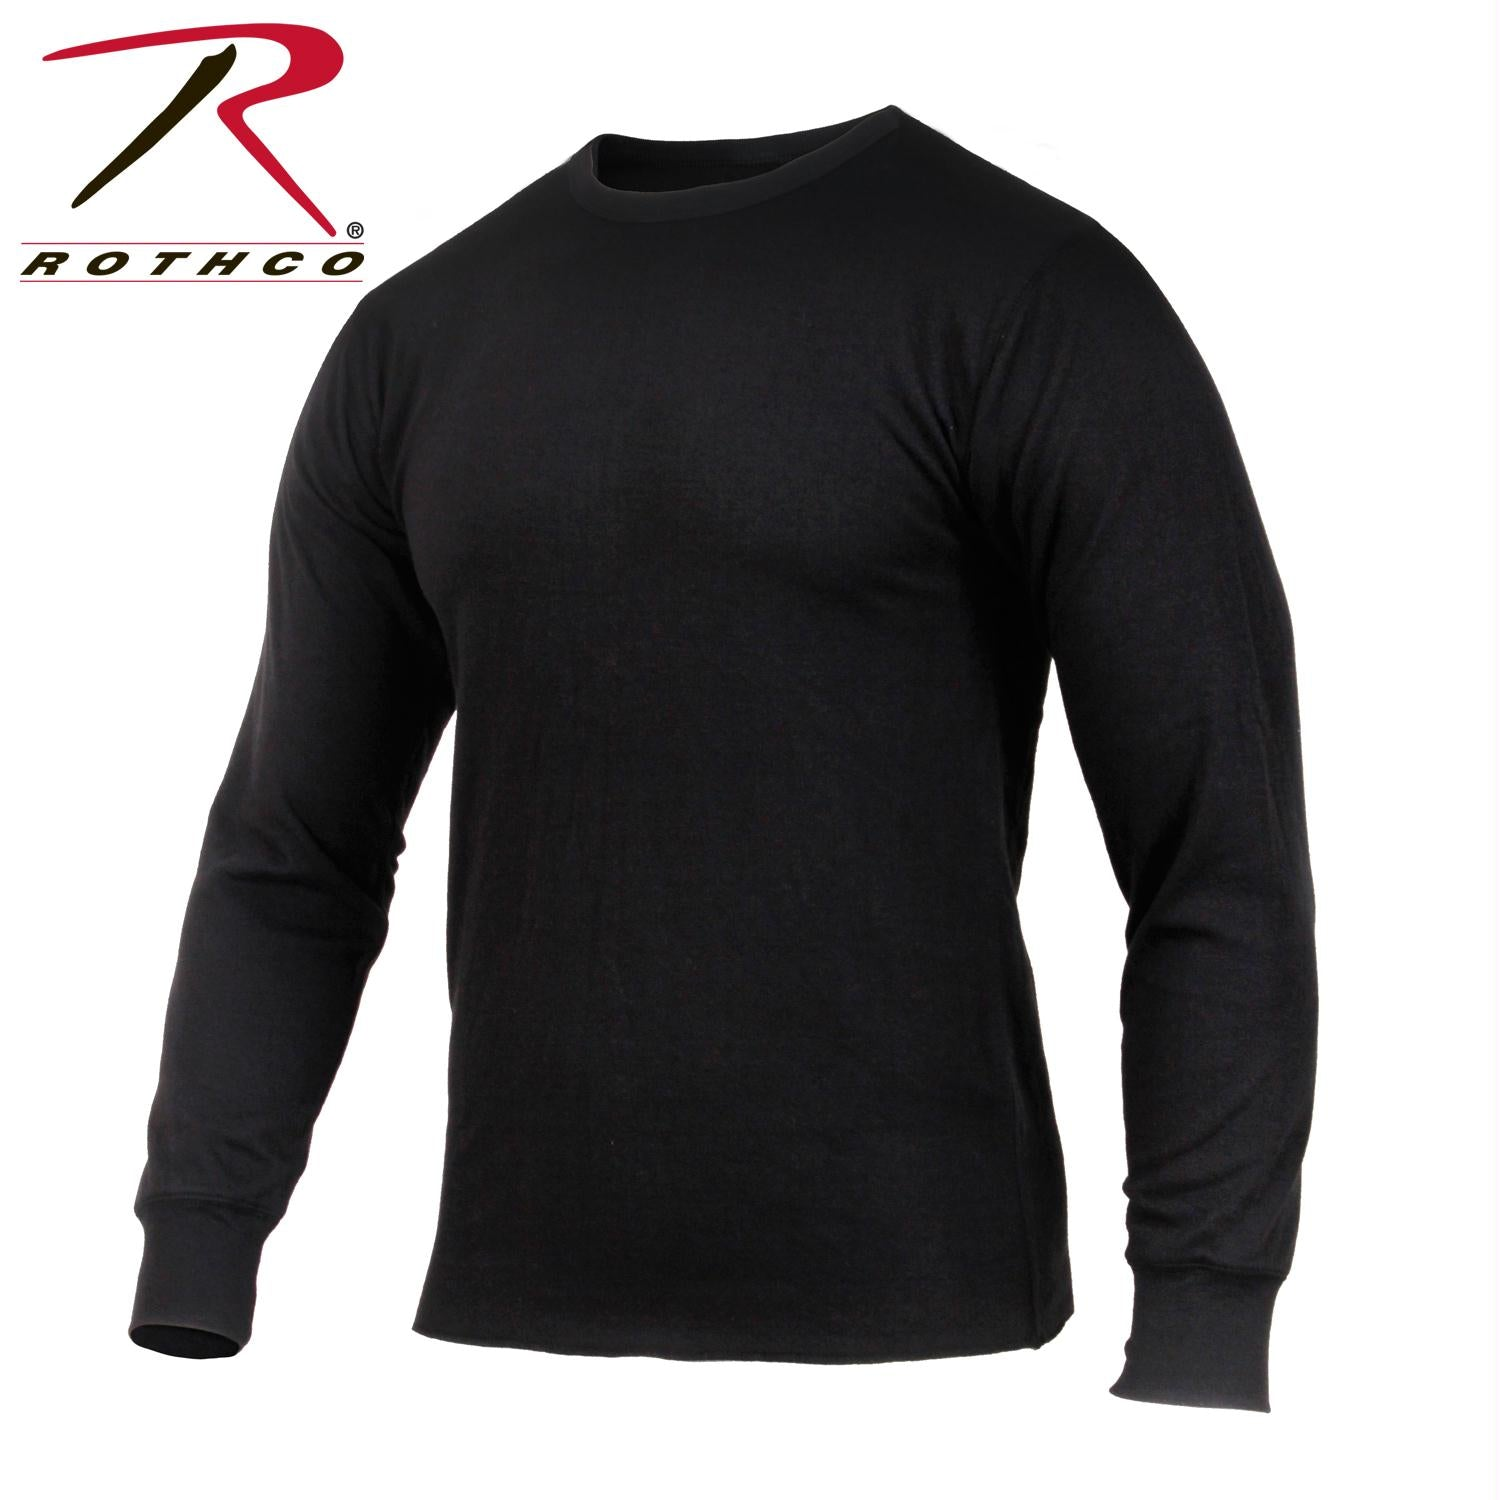 Rothco Midweight Thermal Knit Top - Black / L